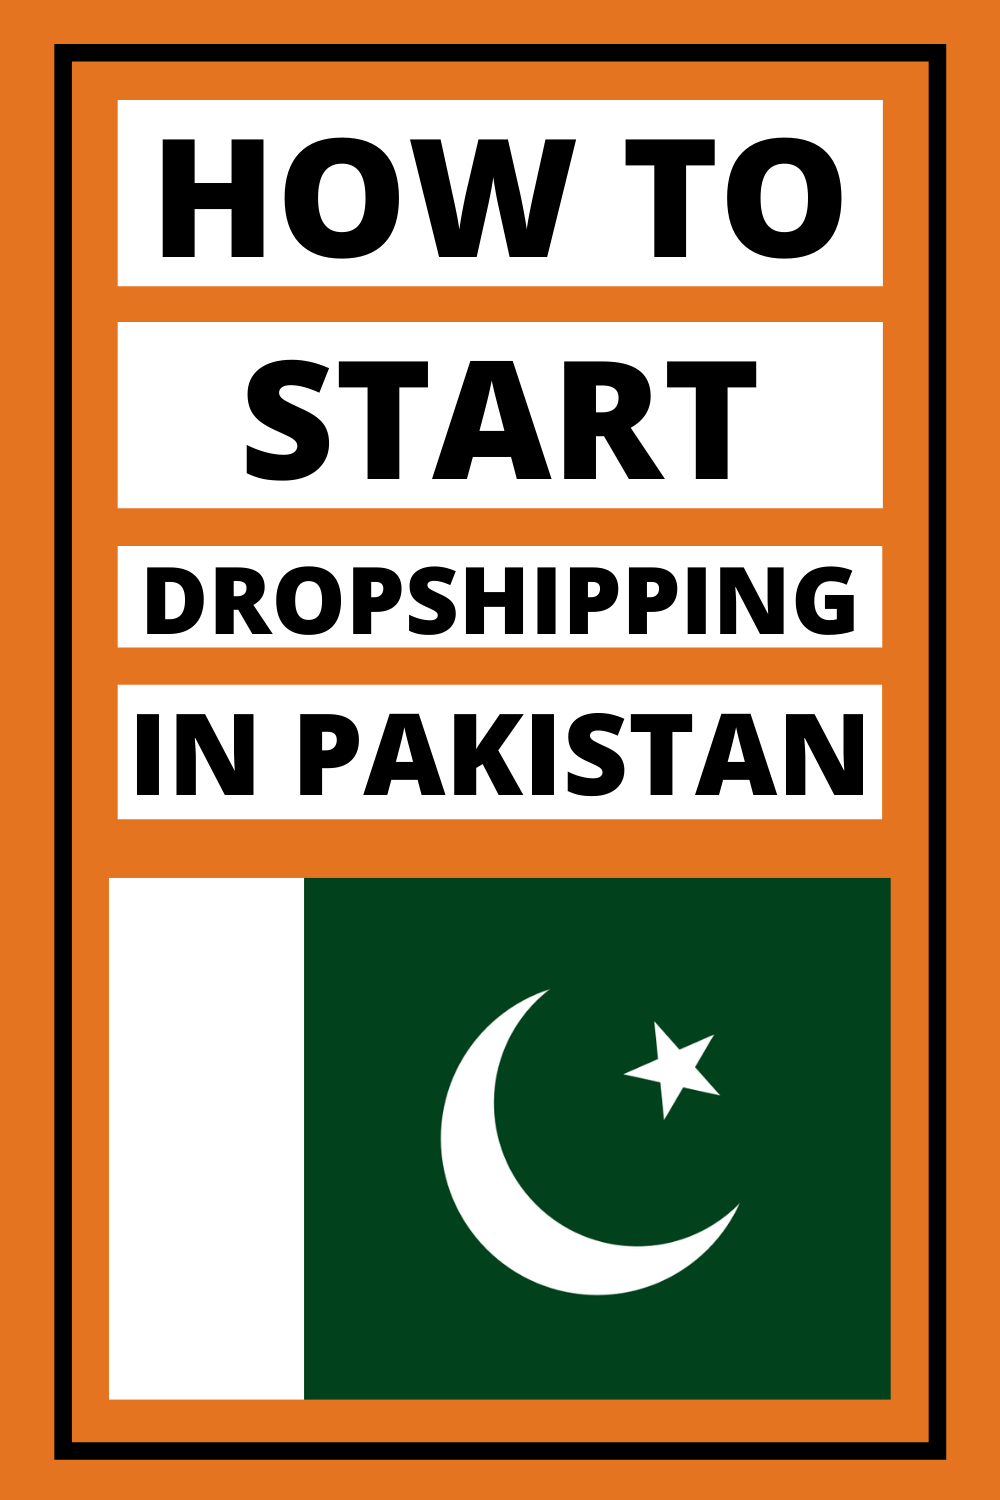 How To Start Dropshipping Business In Pakistan Em 2020